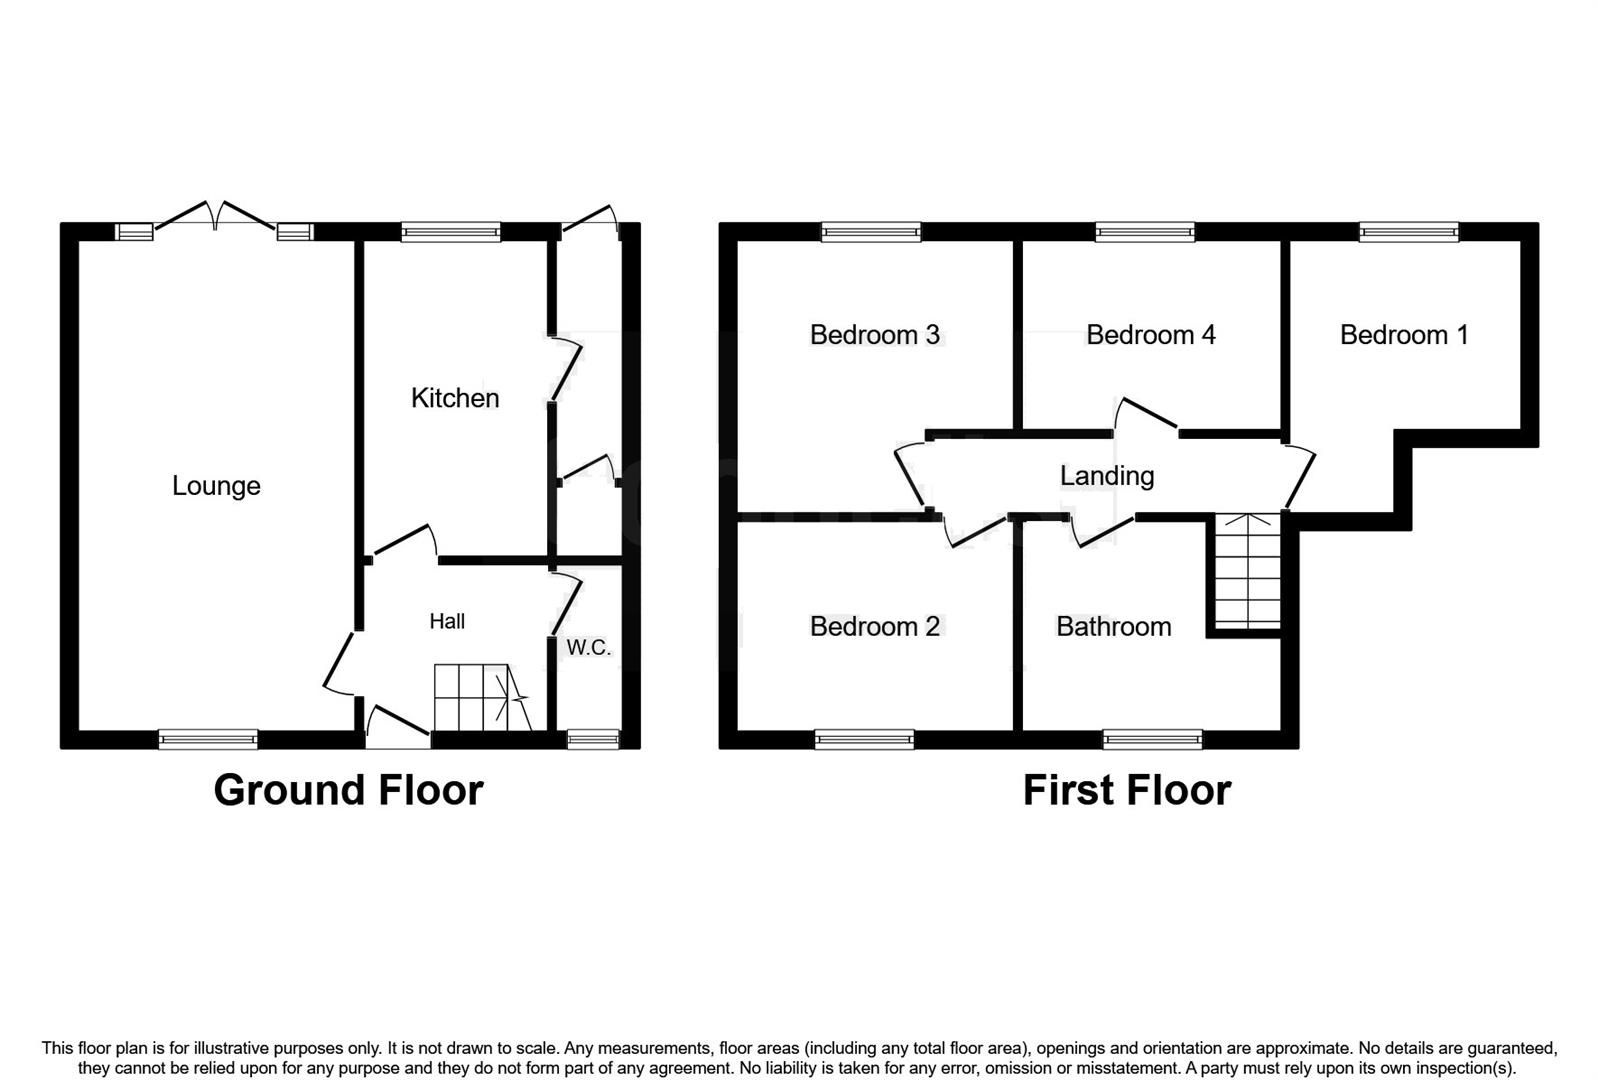 4 bed terraced for sale - Property Floorplan